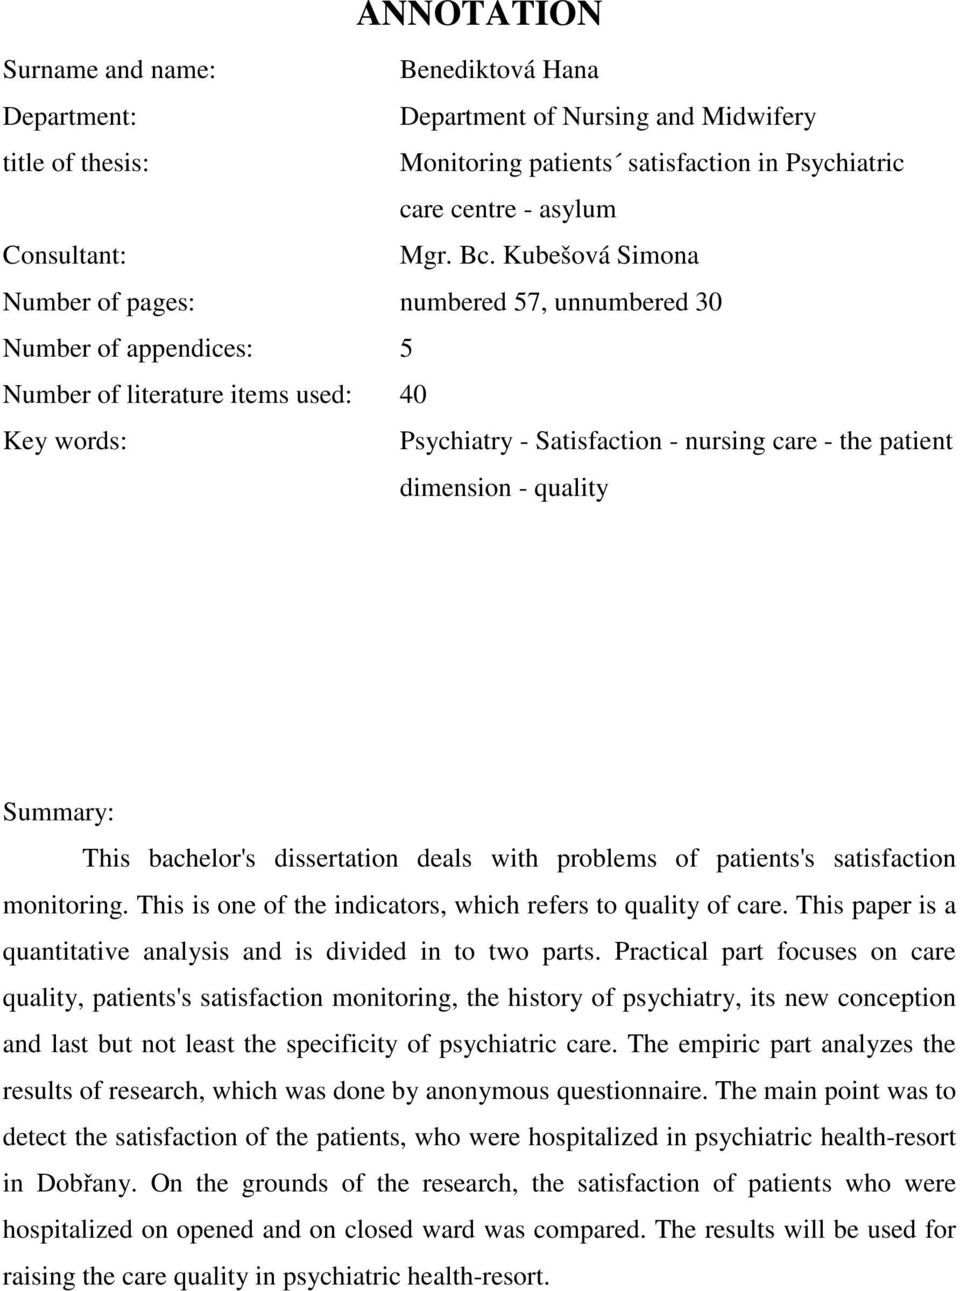 quality Summary: This bachelor's dissertation deals with problems of patients's satisfaction monitoring. This is one of the indicators, which refers to quality of care.